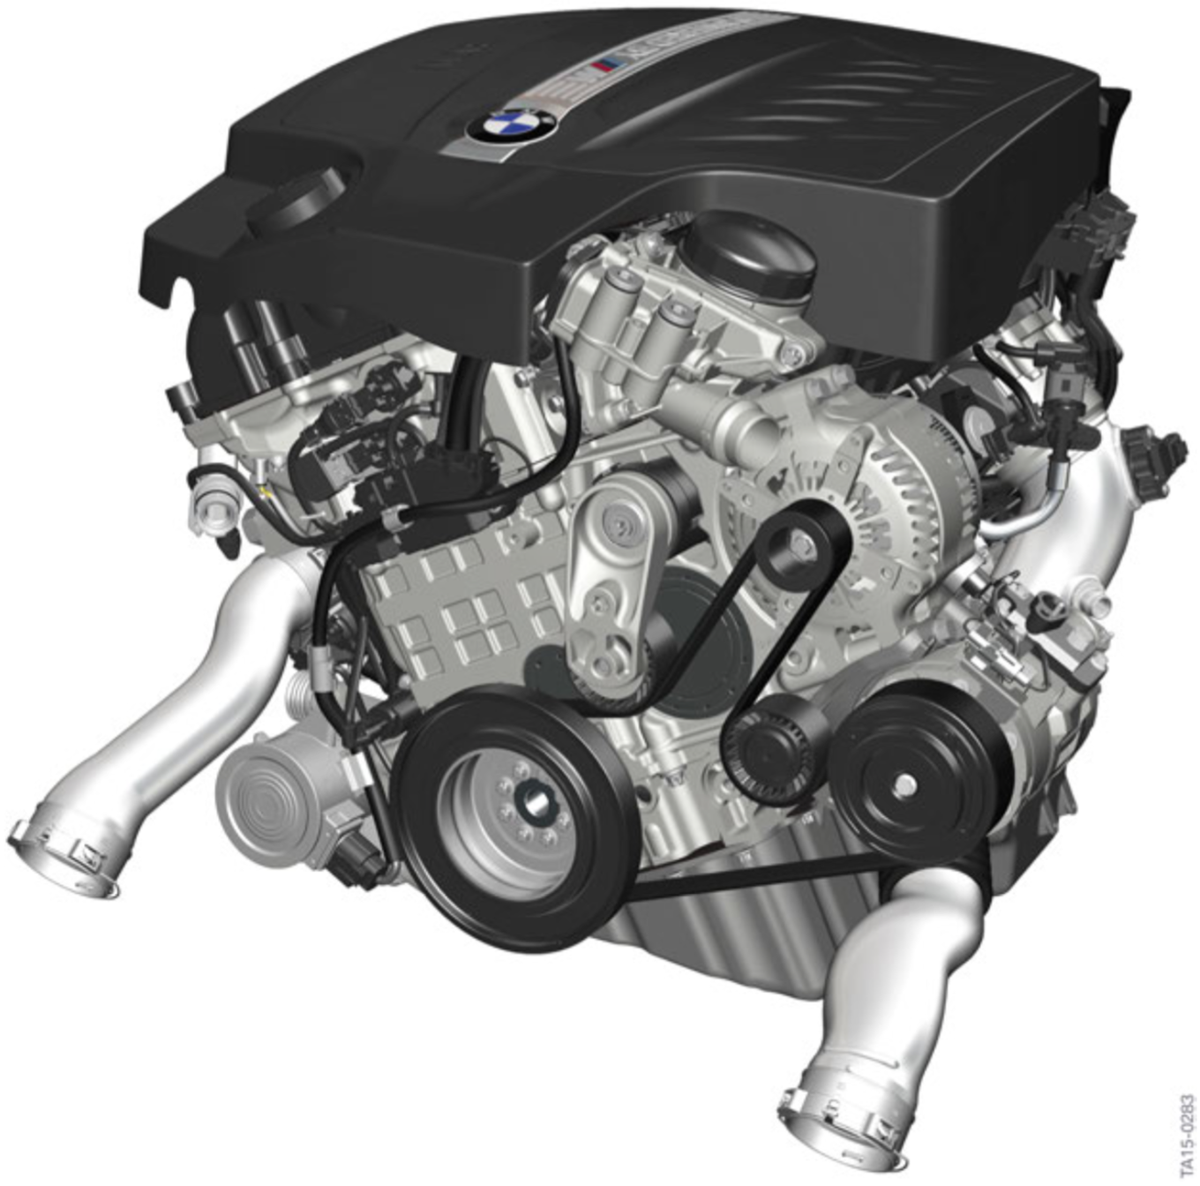 BimmerFile Technical Report: The BMW M2